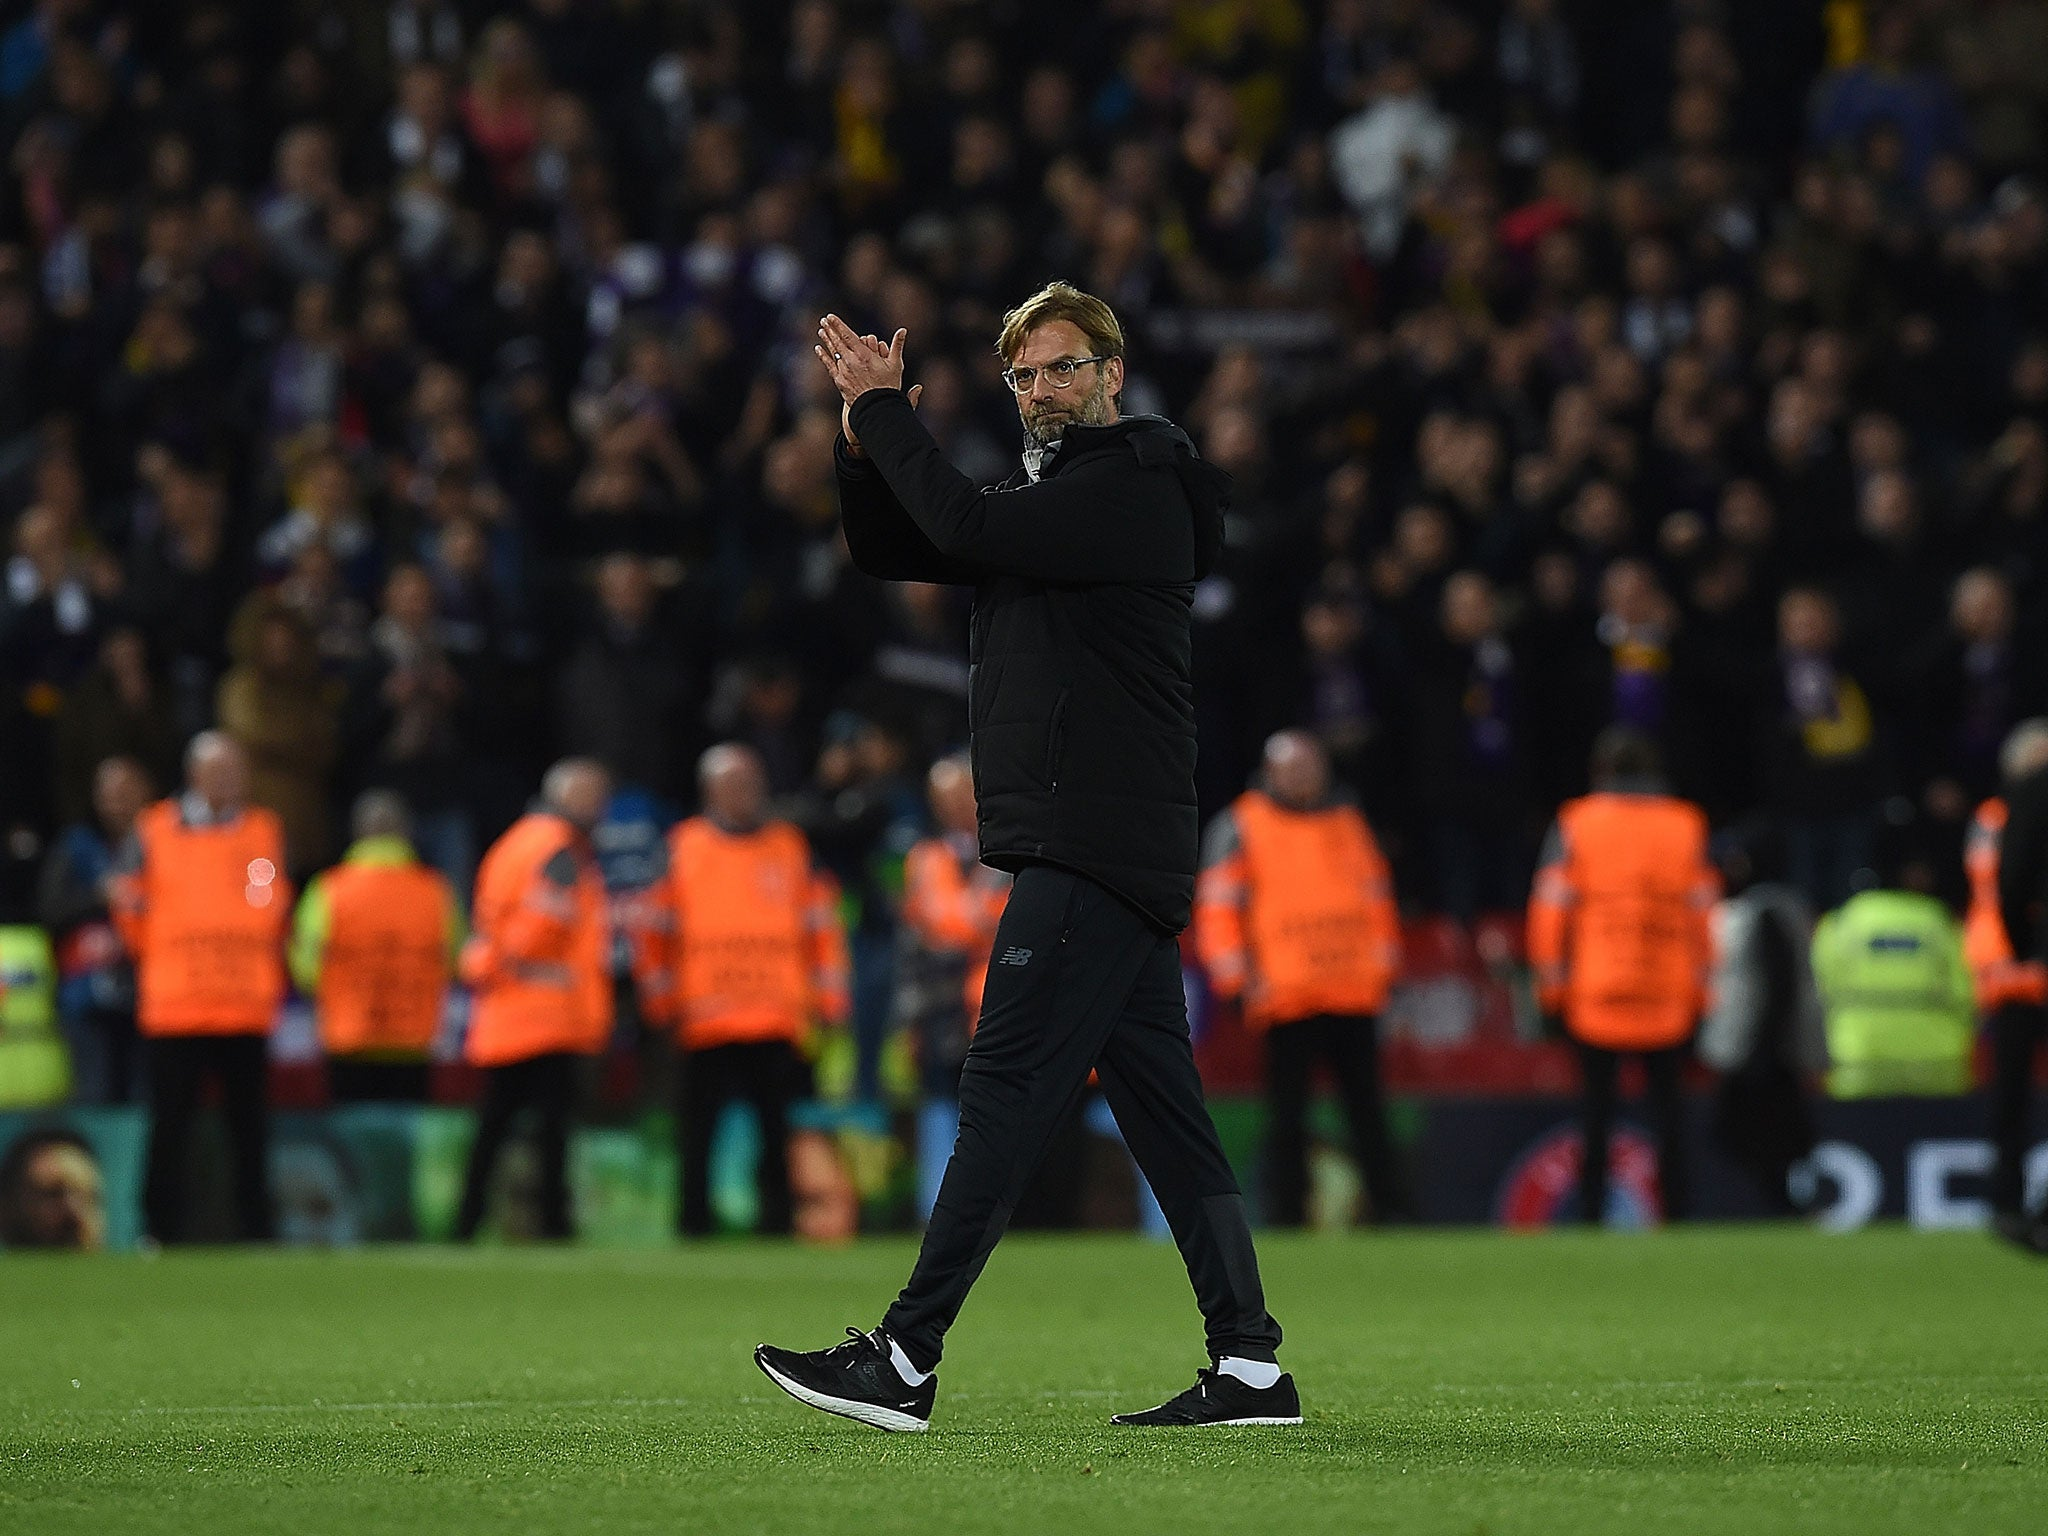 Jurgen Klopp says Liverpool are better equipped to beat defensive teams after Maribor win